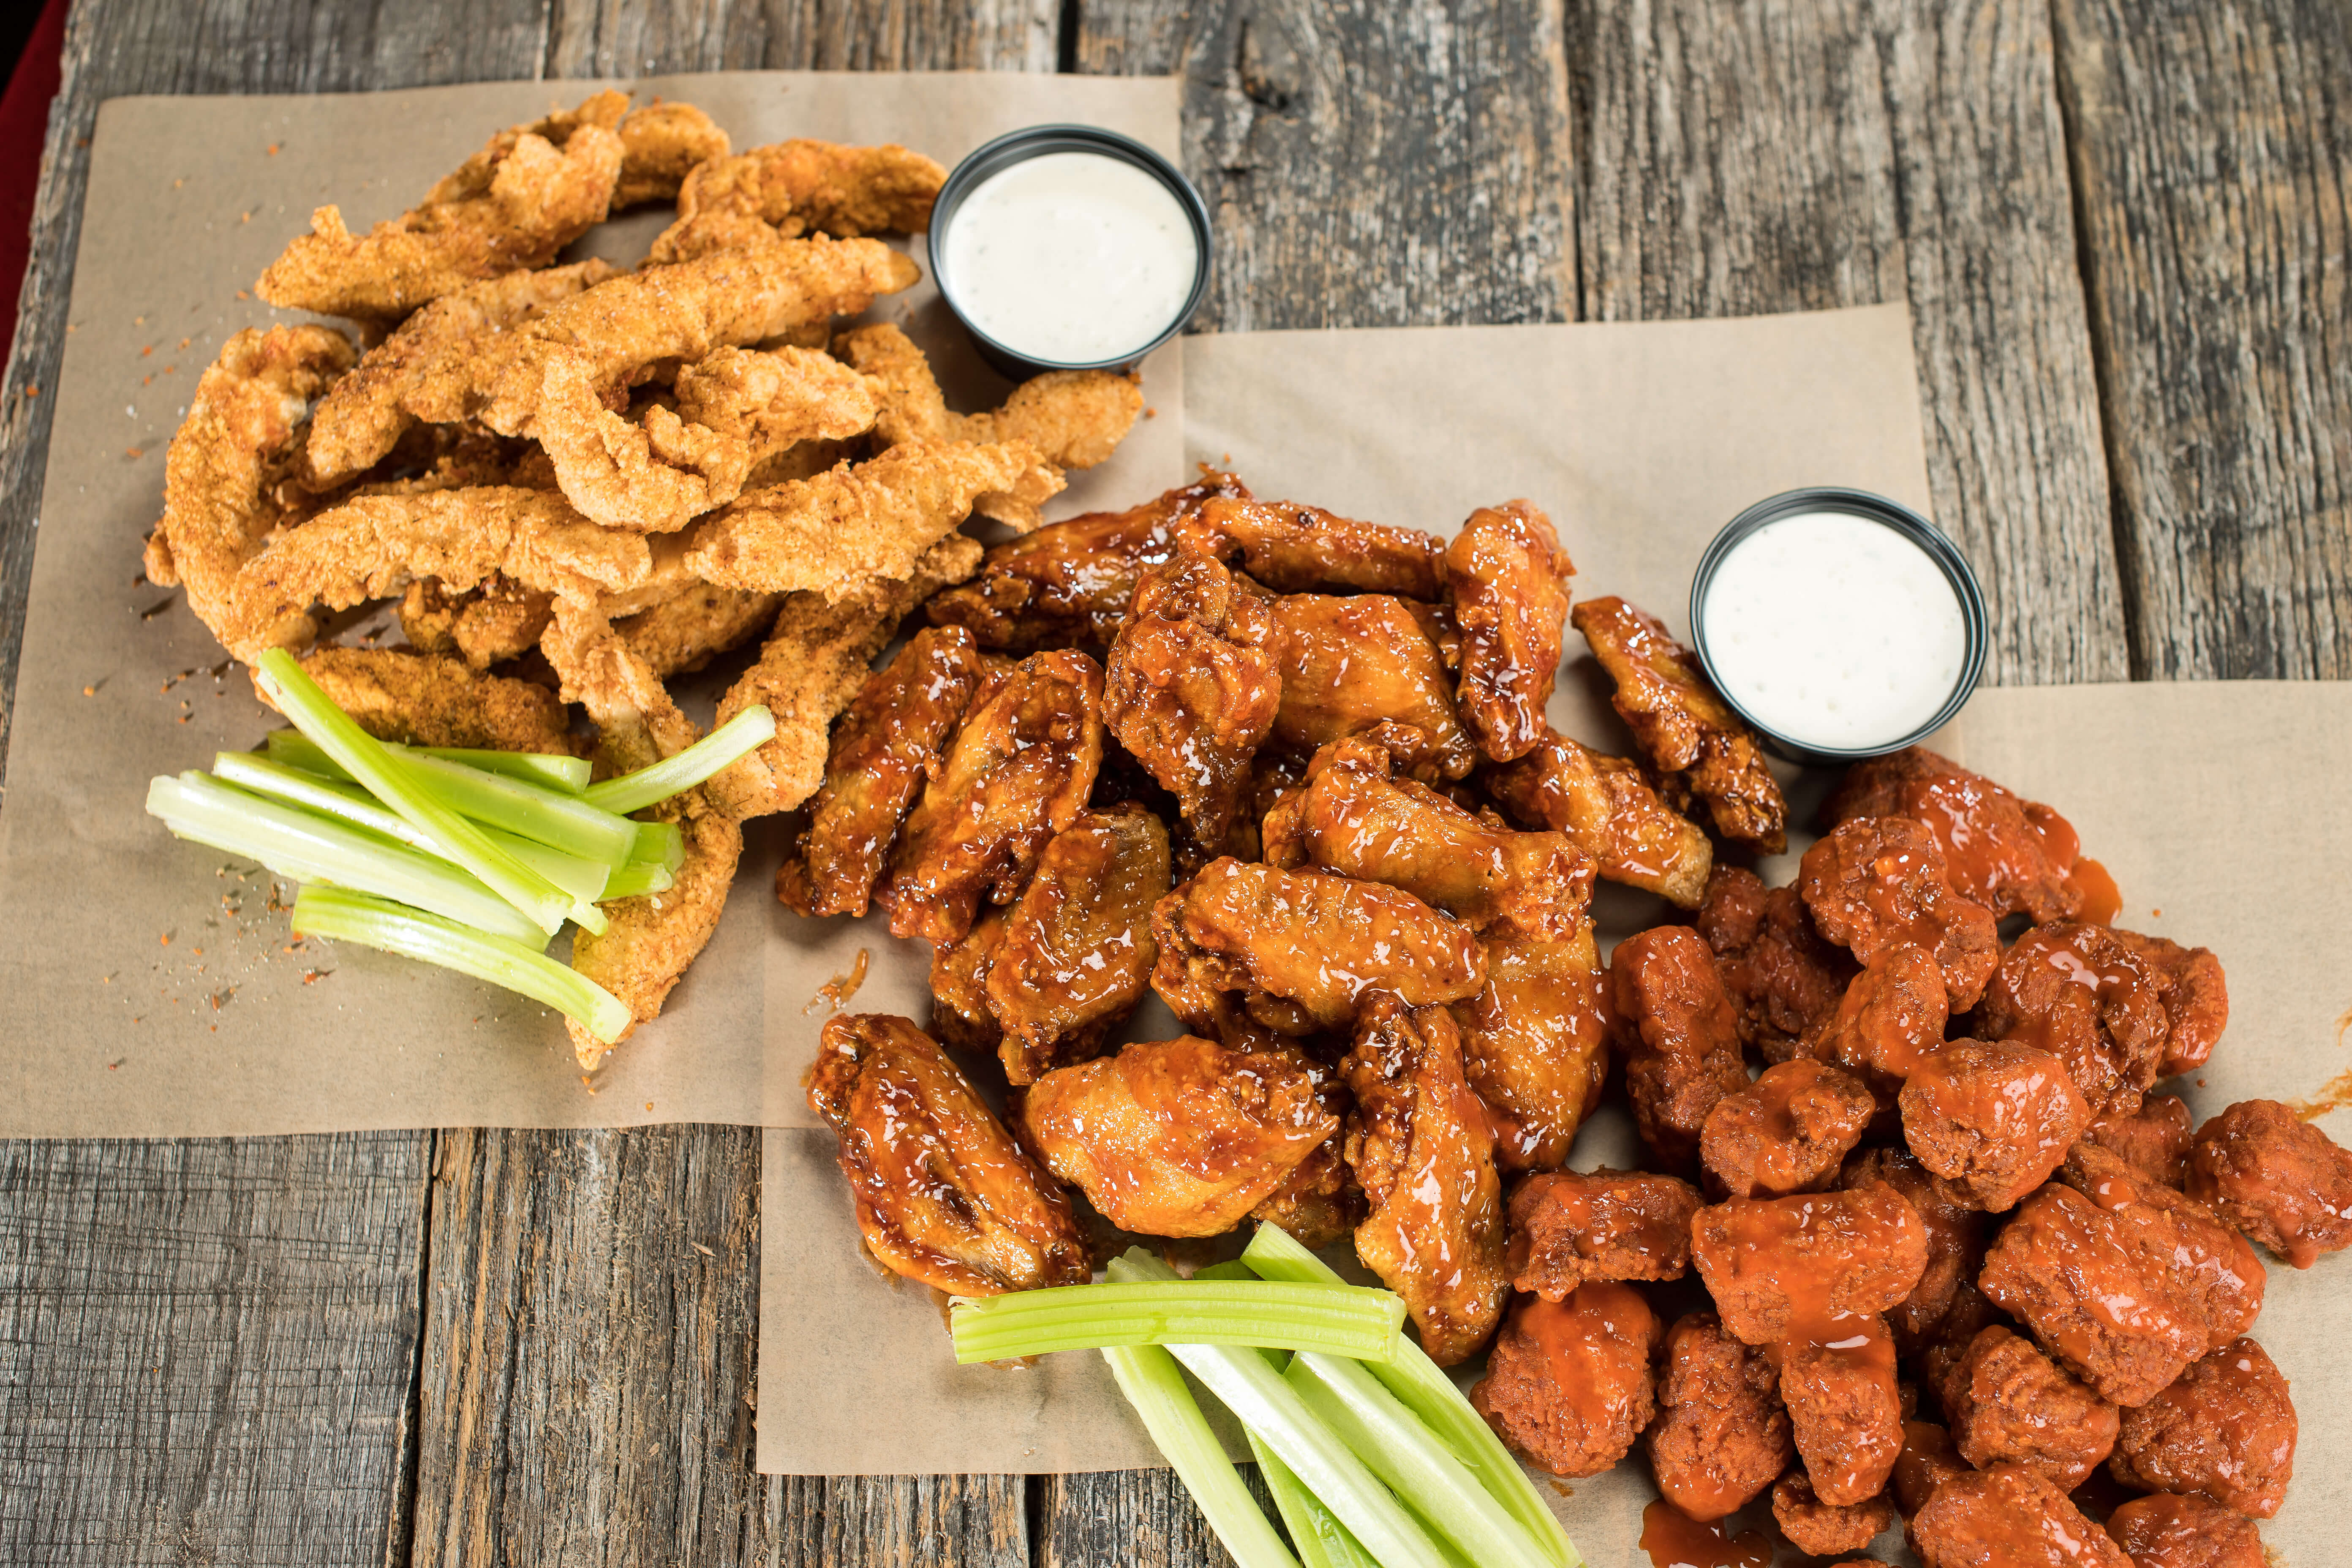 Native offers traditional wings, boneless wings and their signature Native Style Chicken Strippers.